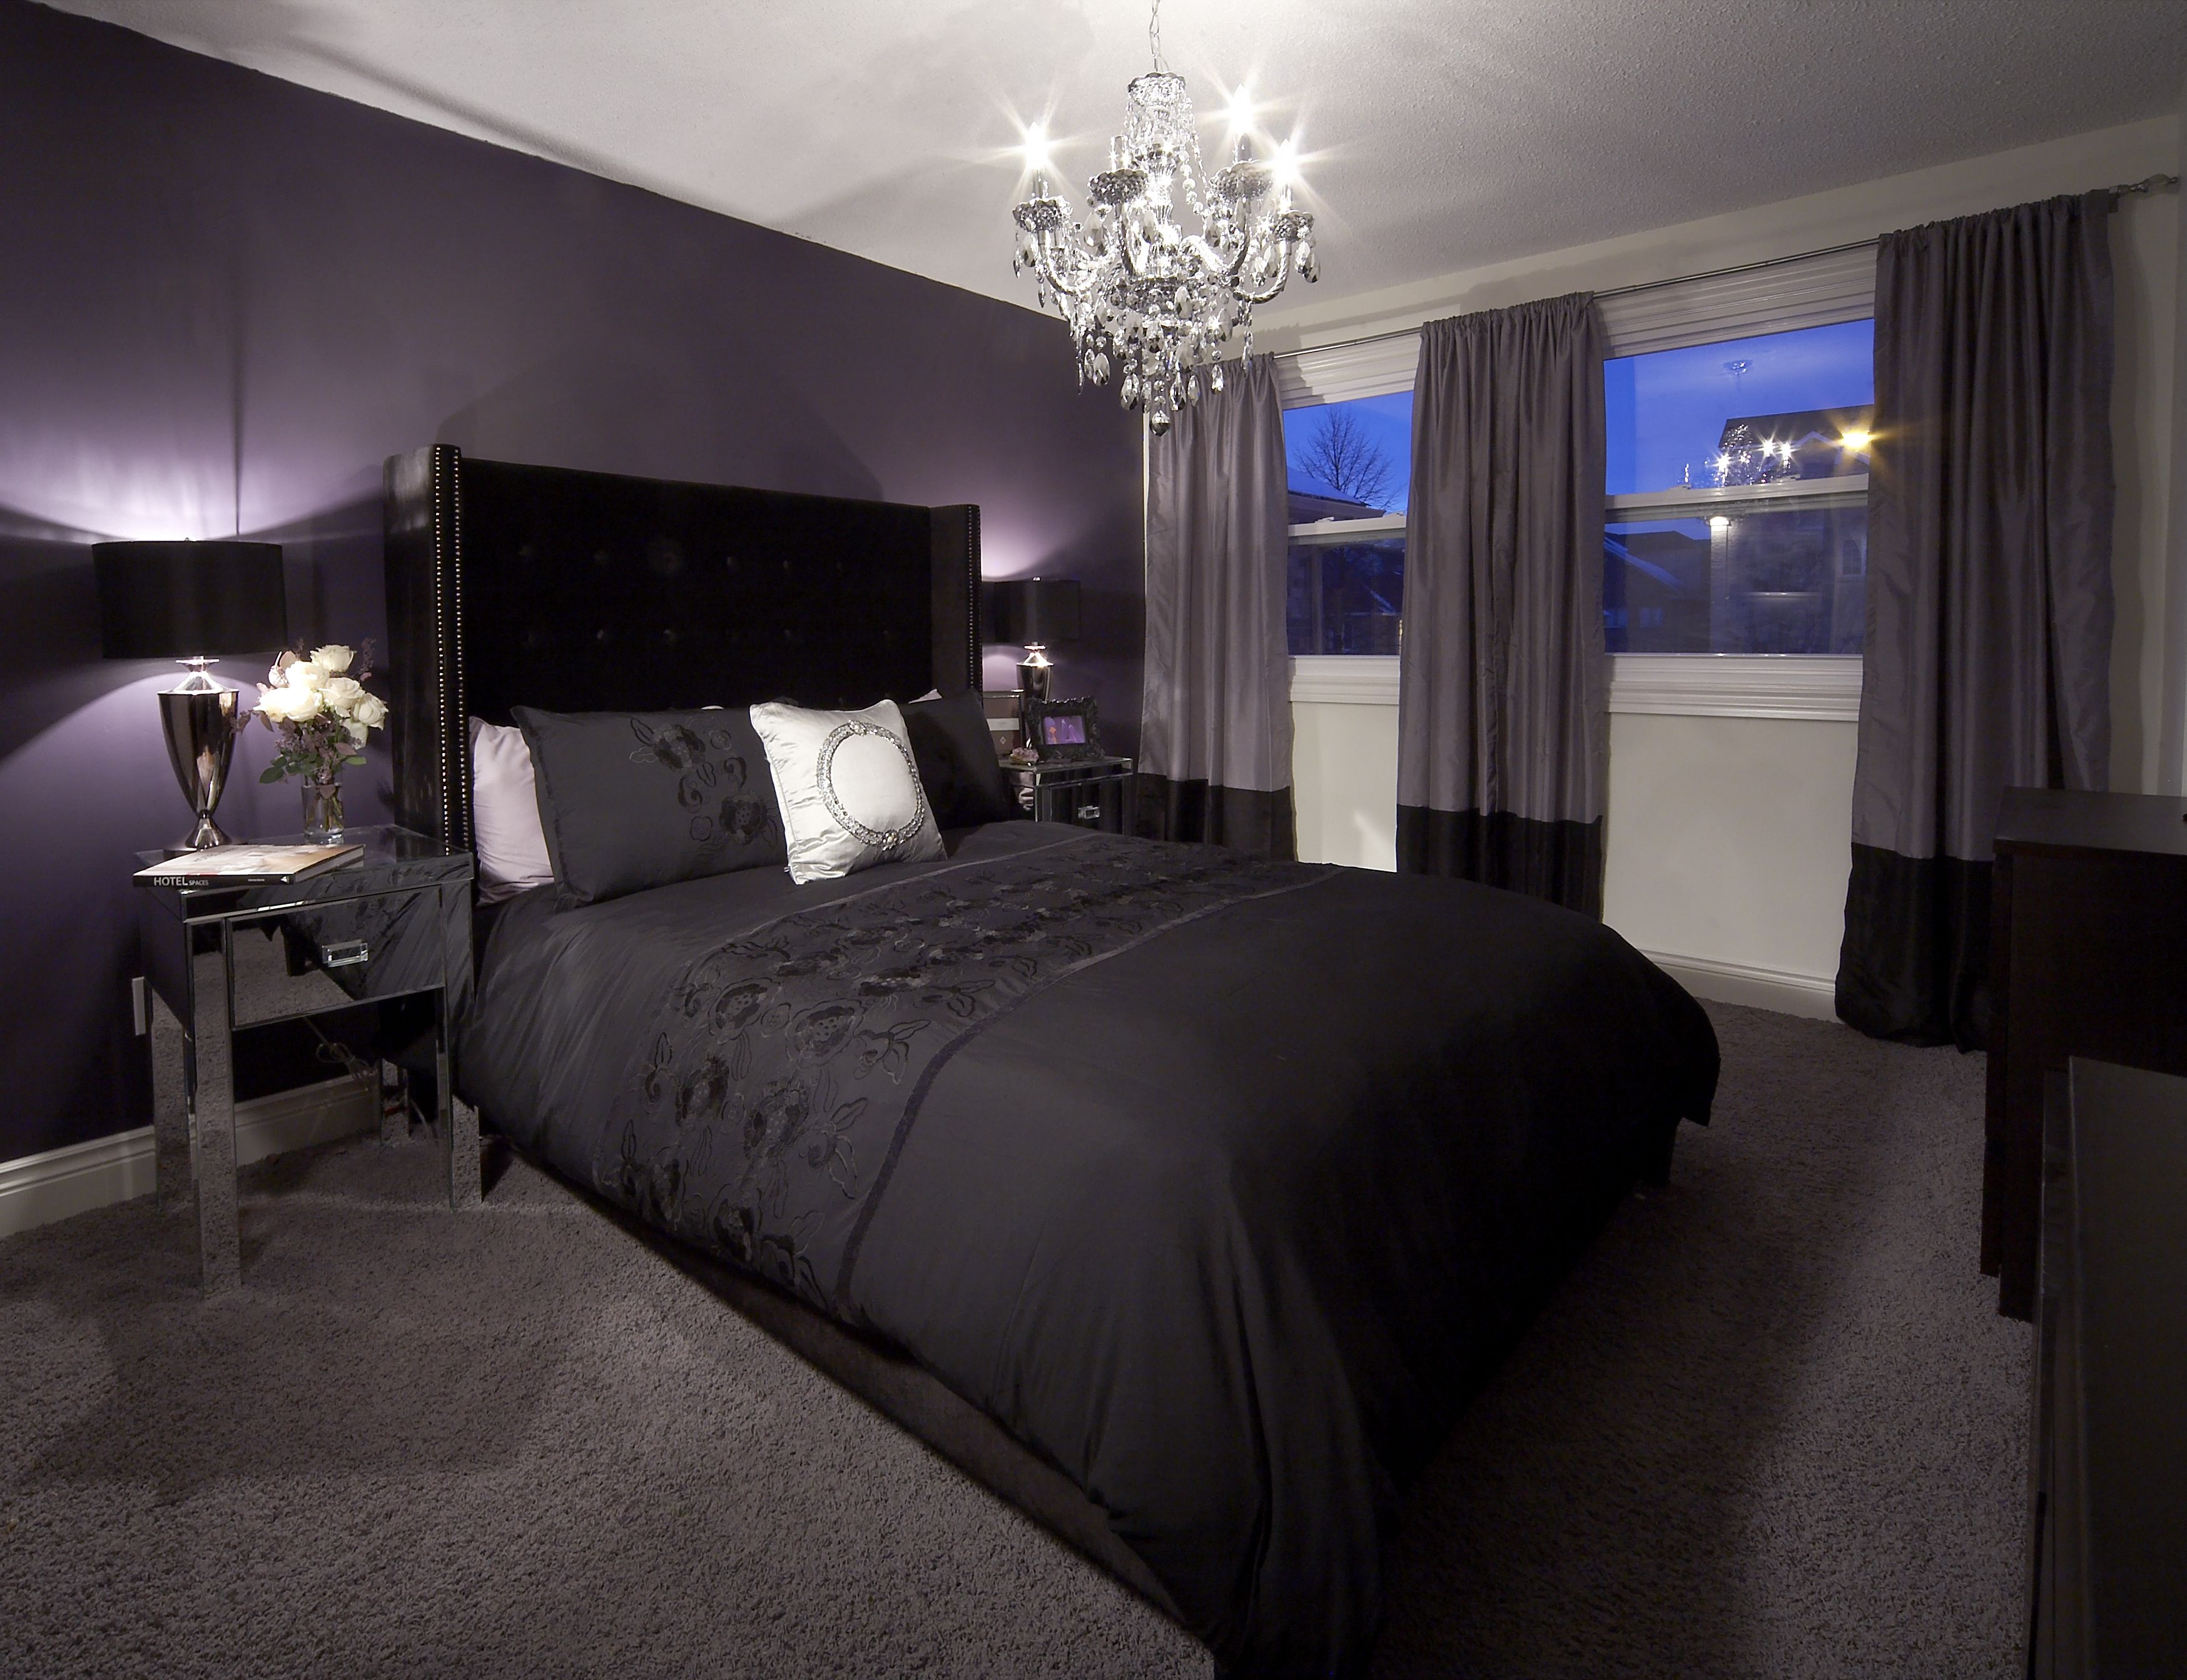 Bedroom with purple feature wall and drapery, crystal